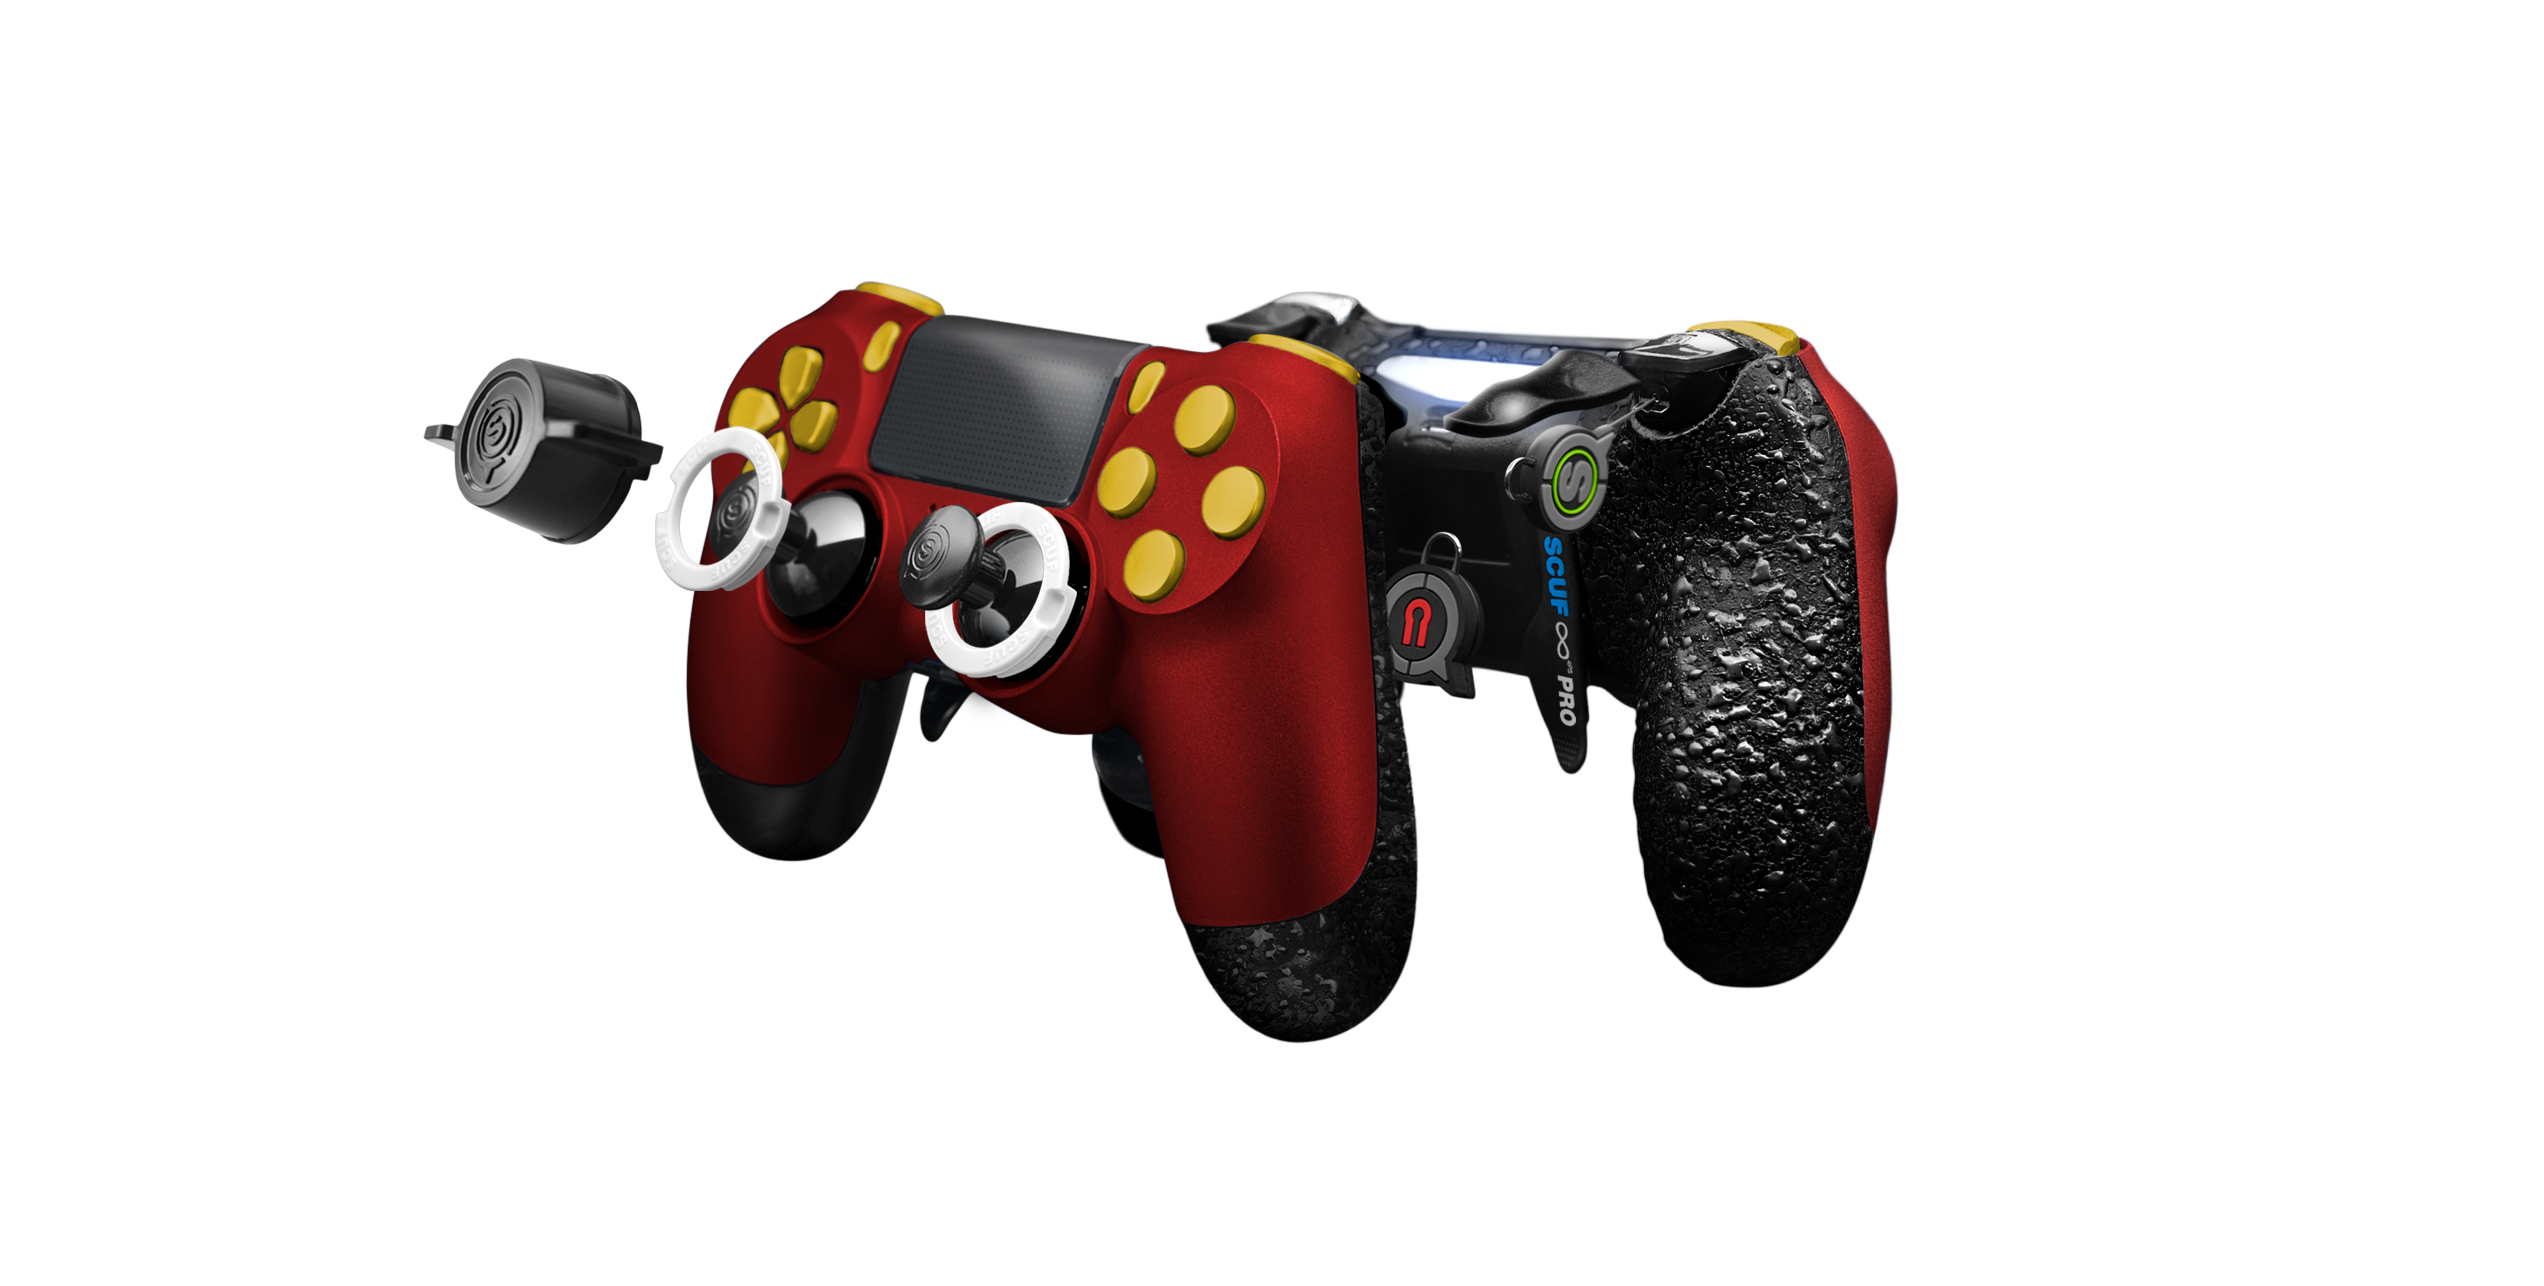 Scuf Gaming 174 Releases Two New Pro Controllers Scuf Impact